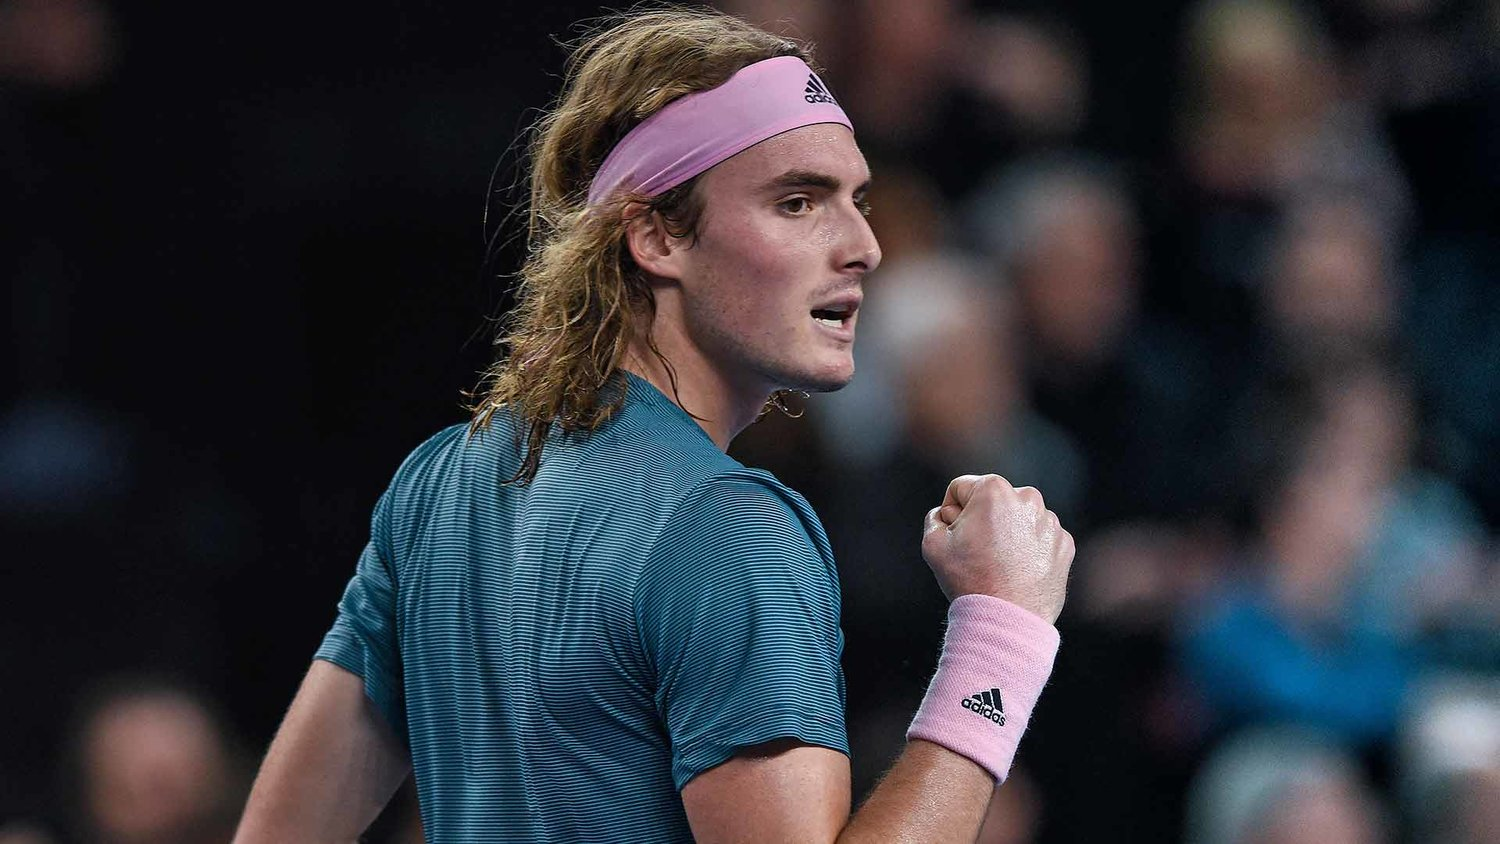 Stefanos Tsitsipas Winner Of The Marseille Atp And No 11 In The World Ranking Ellines Com